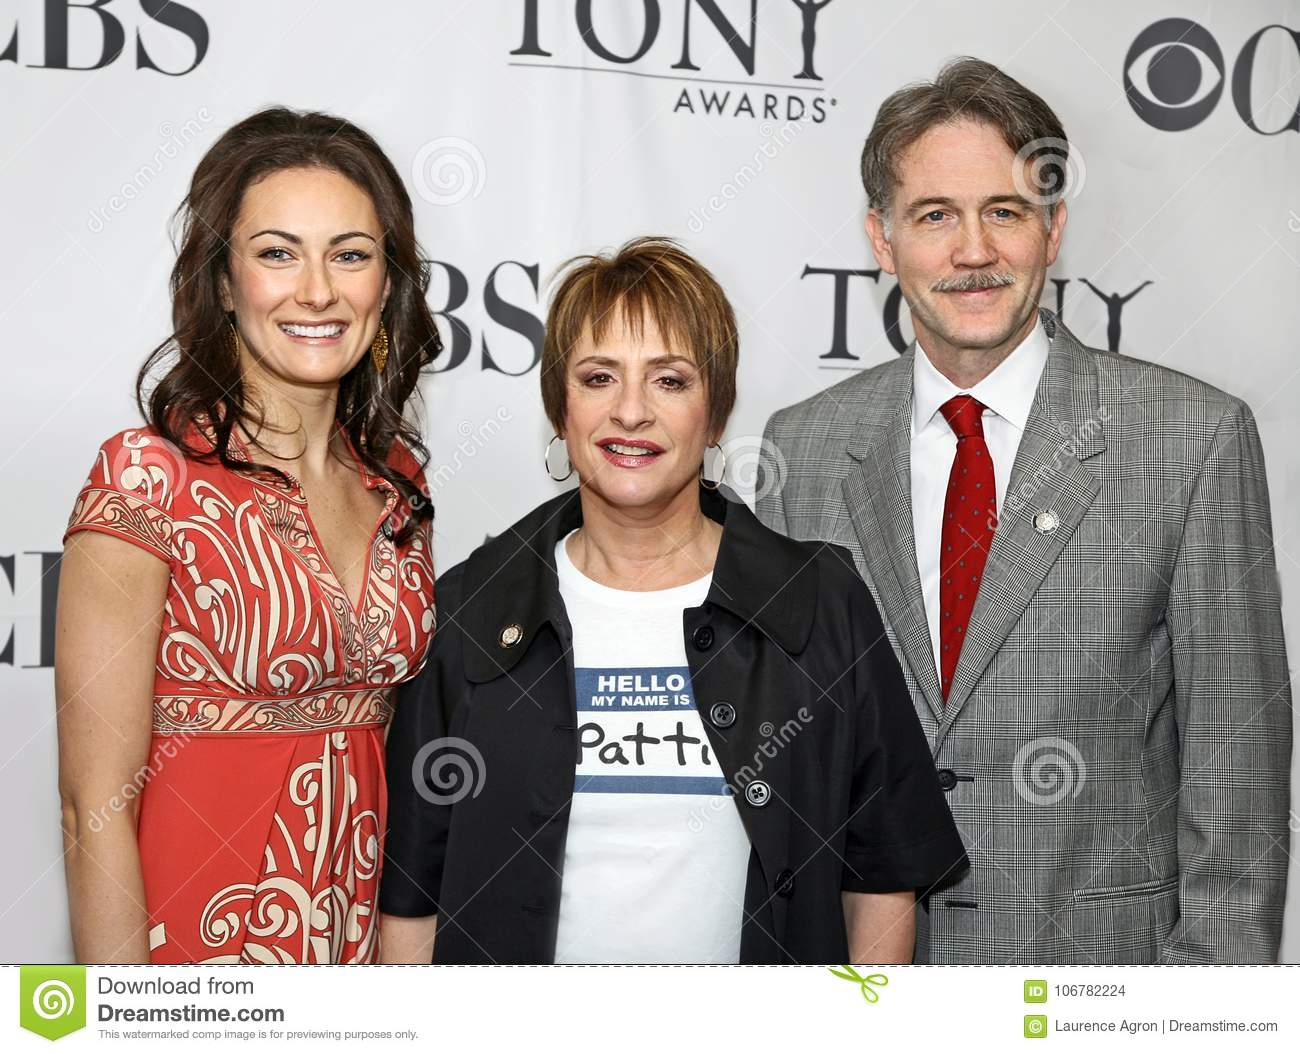 Laura Benanti, Patti LuPone, and Boyd Gaines